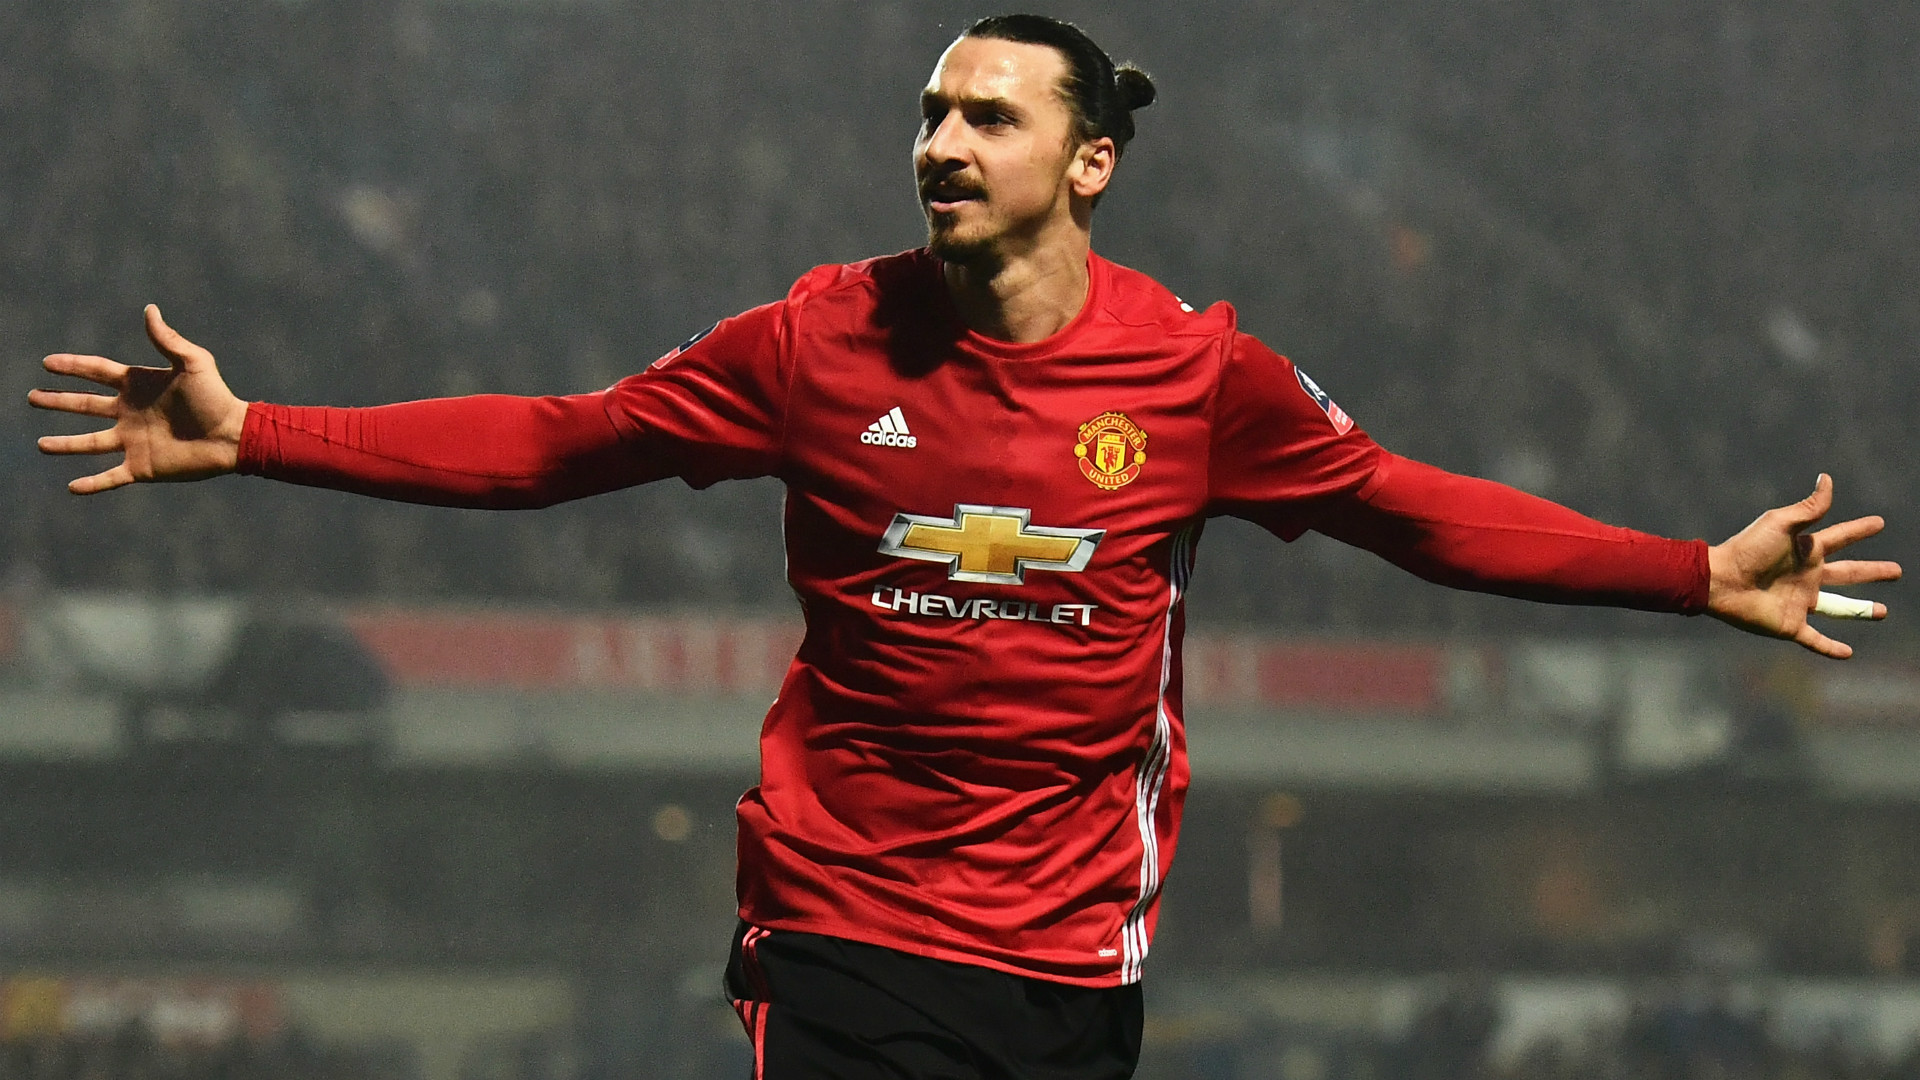 Zlatan Ibrahimovic takes £200k-a-week pay cut at Manchester United